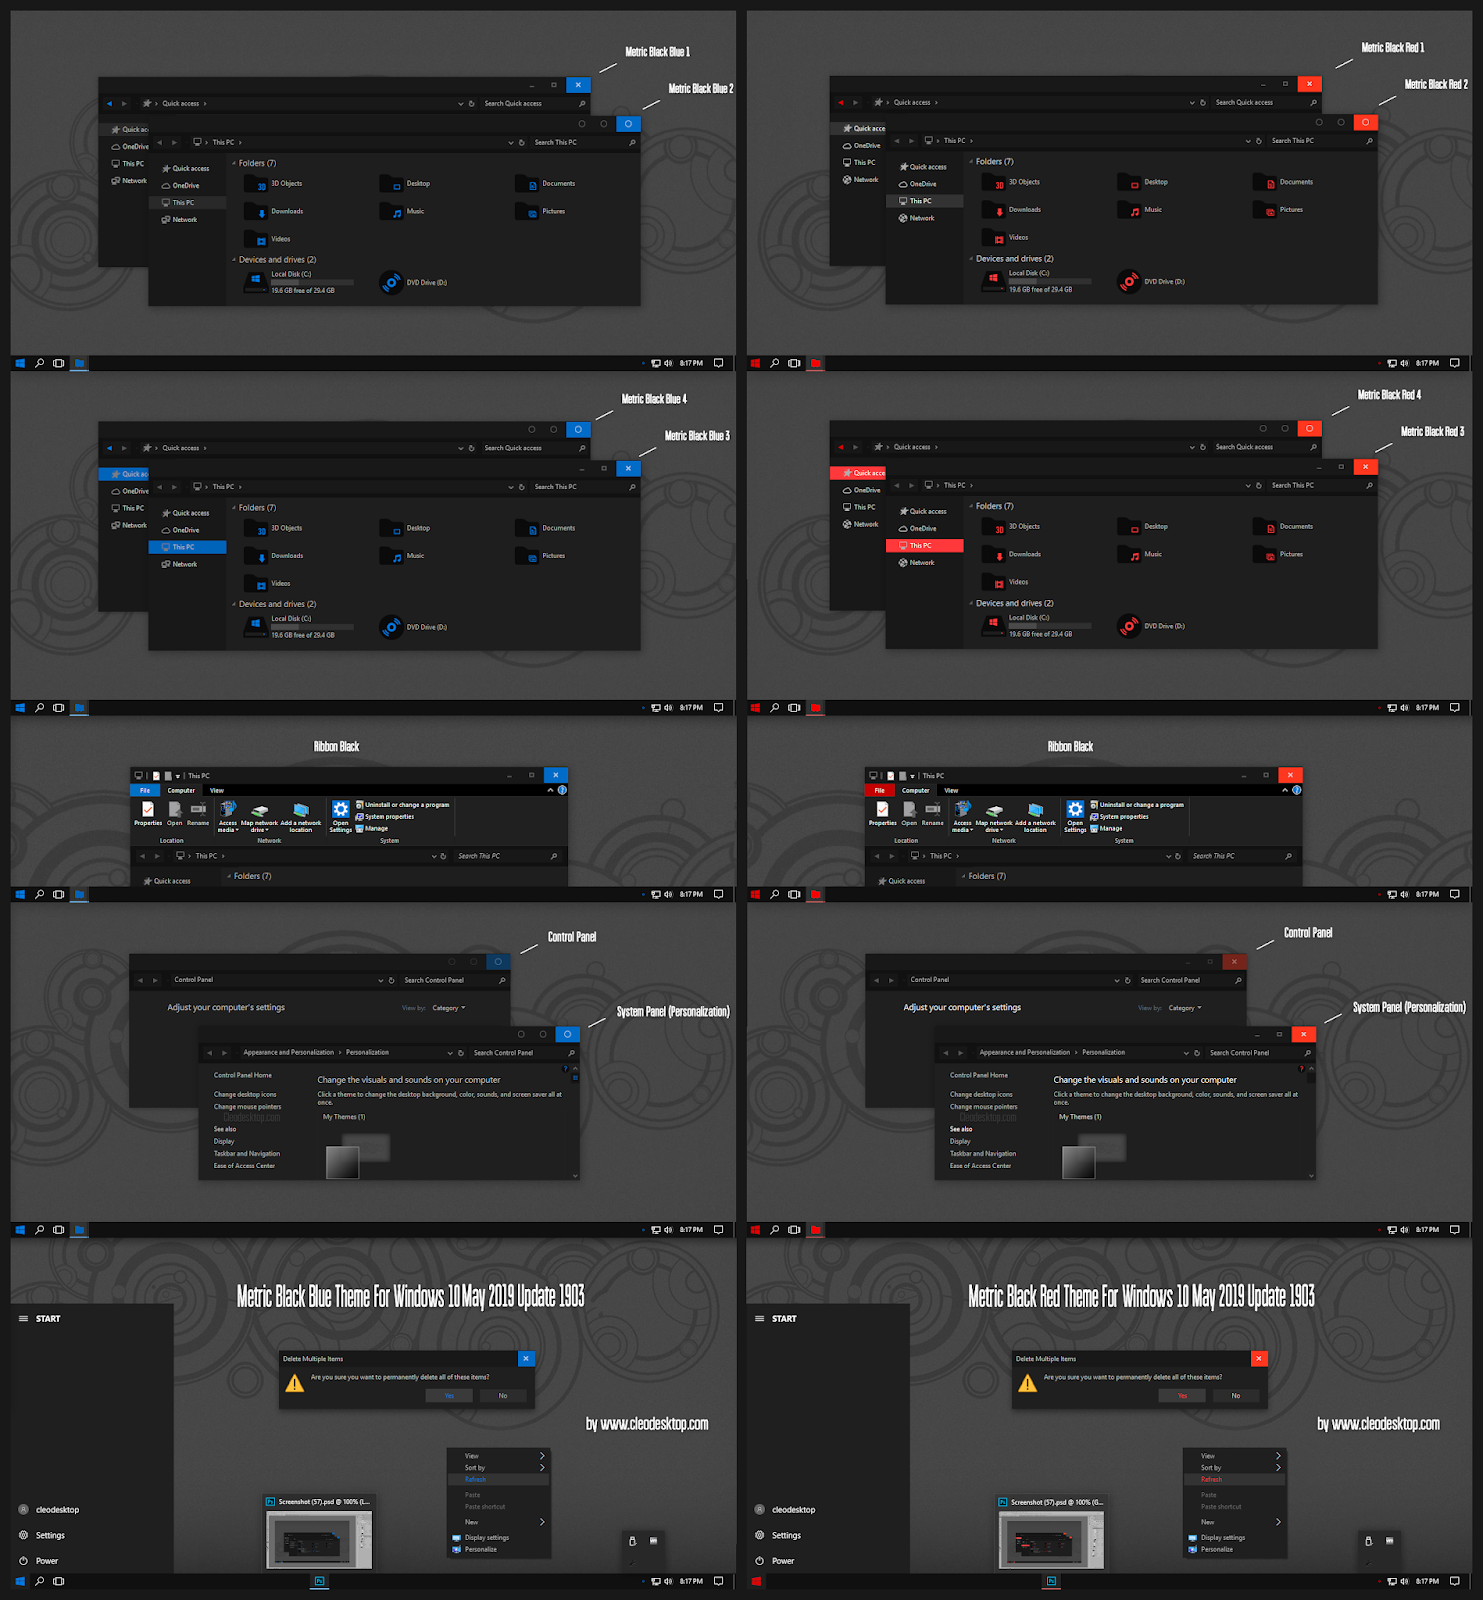 Metric Black Blue And Red Theme Windows10 May 2019 Update